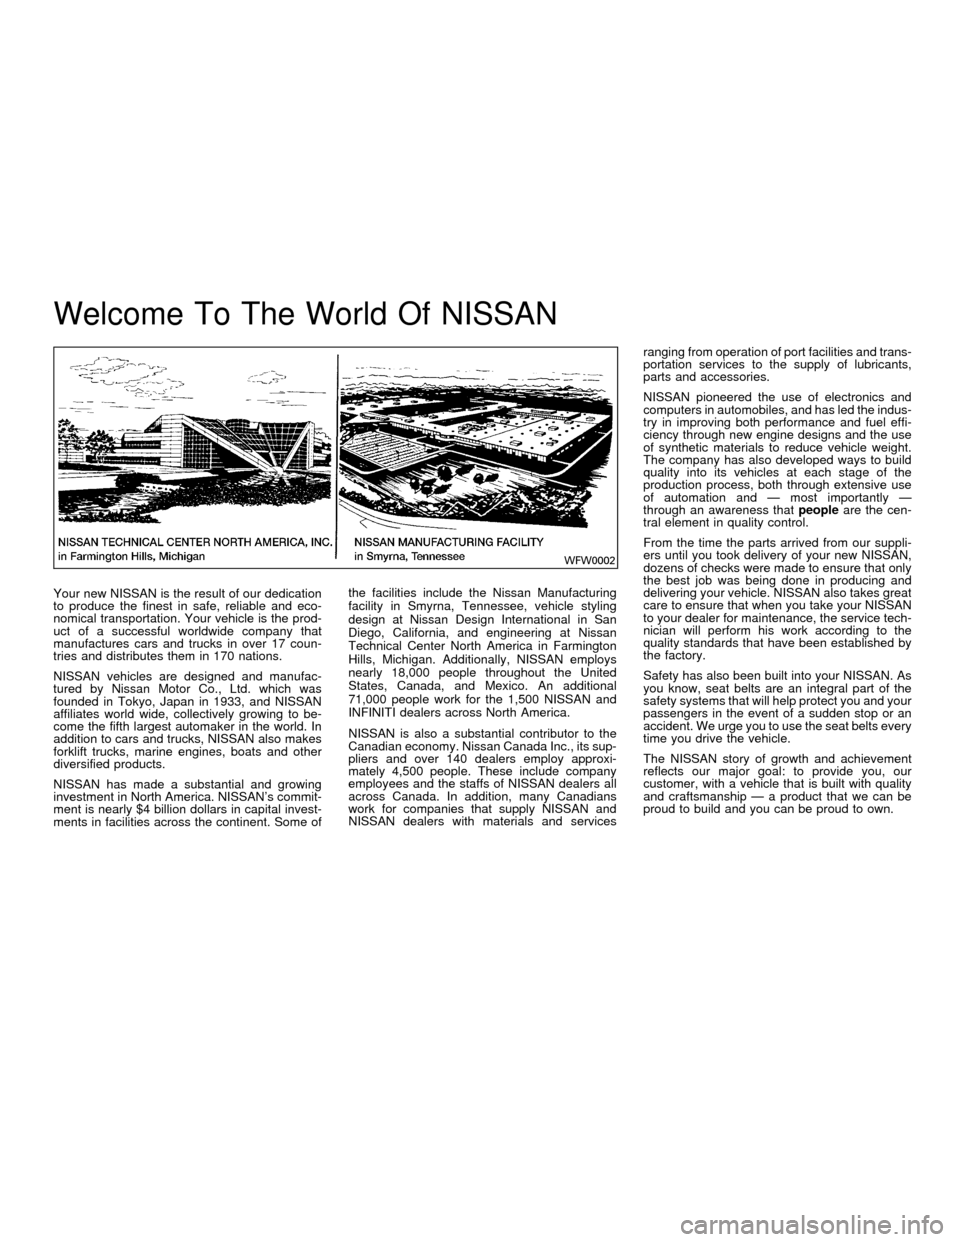 NISSAN FRONTIER 2001 D22 / 1.G Owners Manual